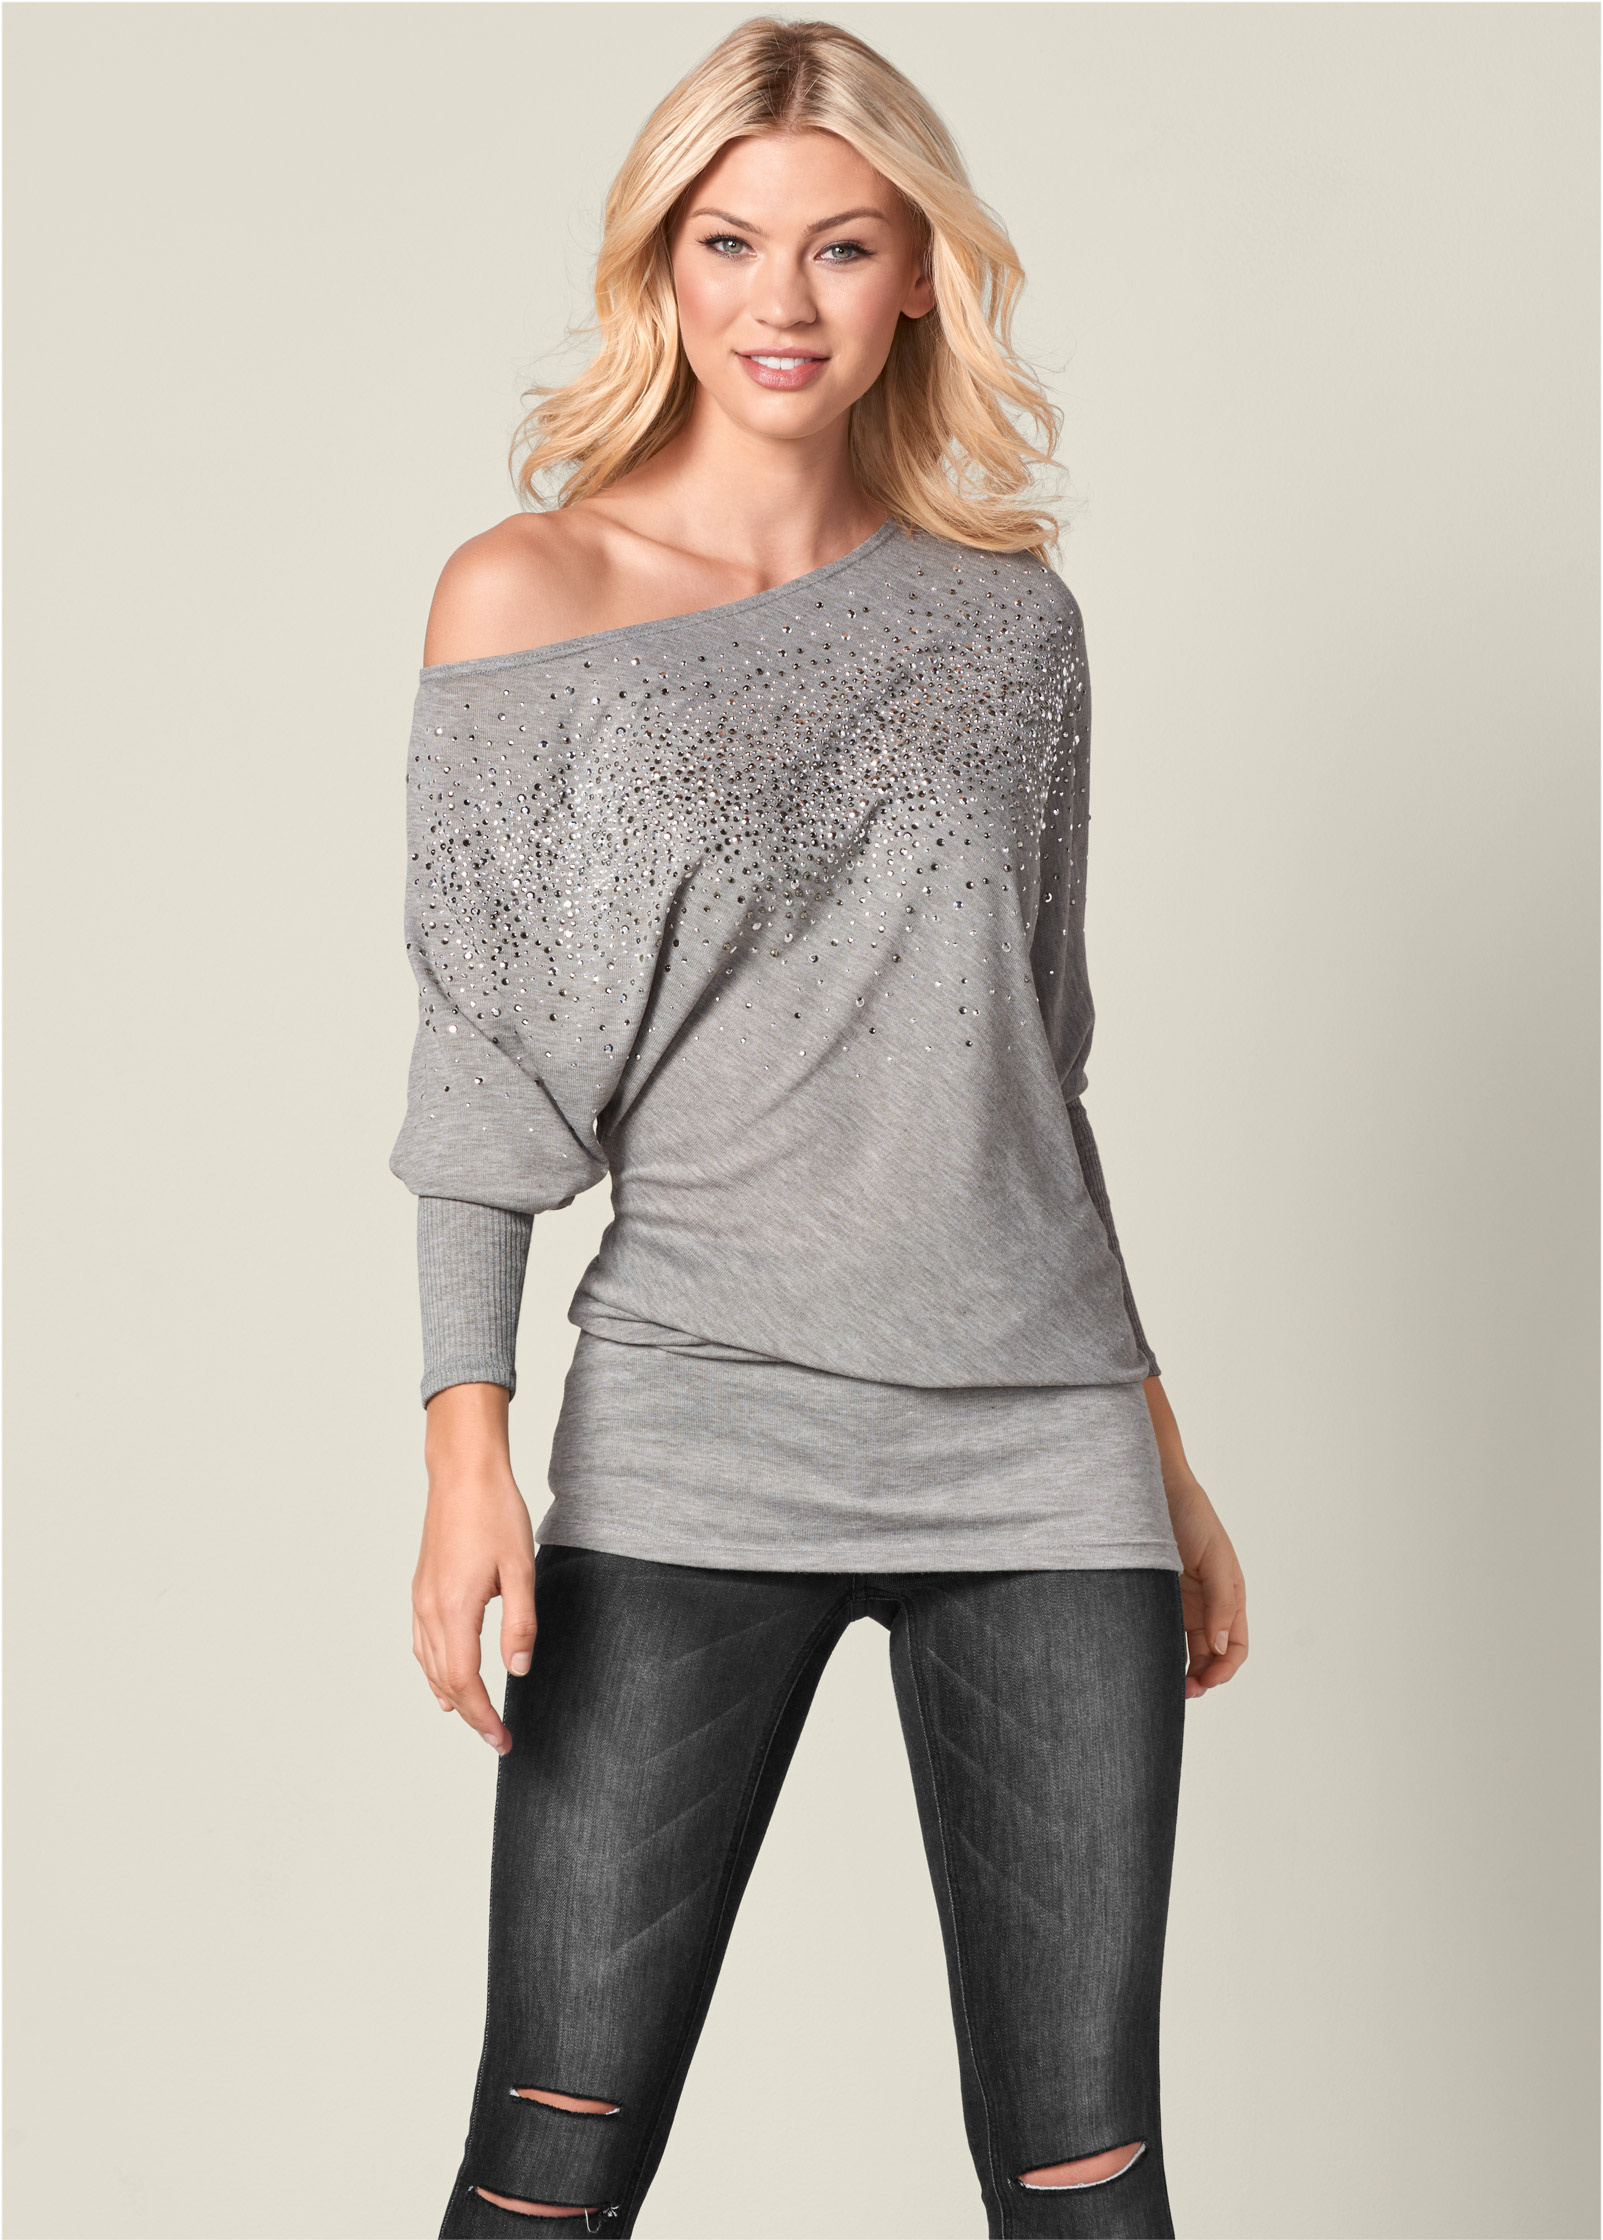 3x womens tops sexy